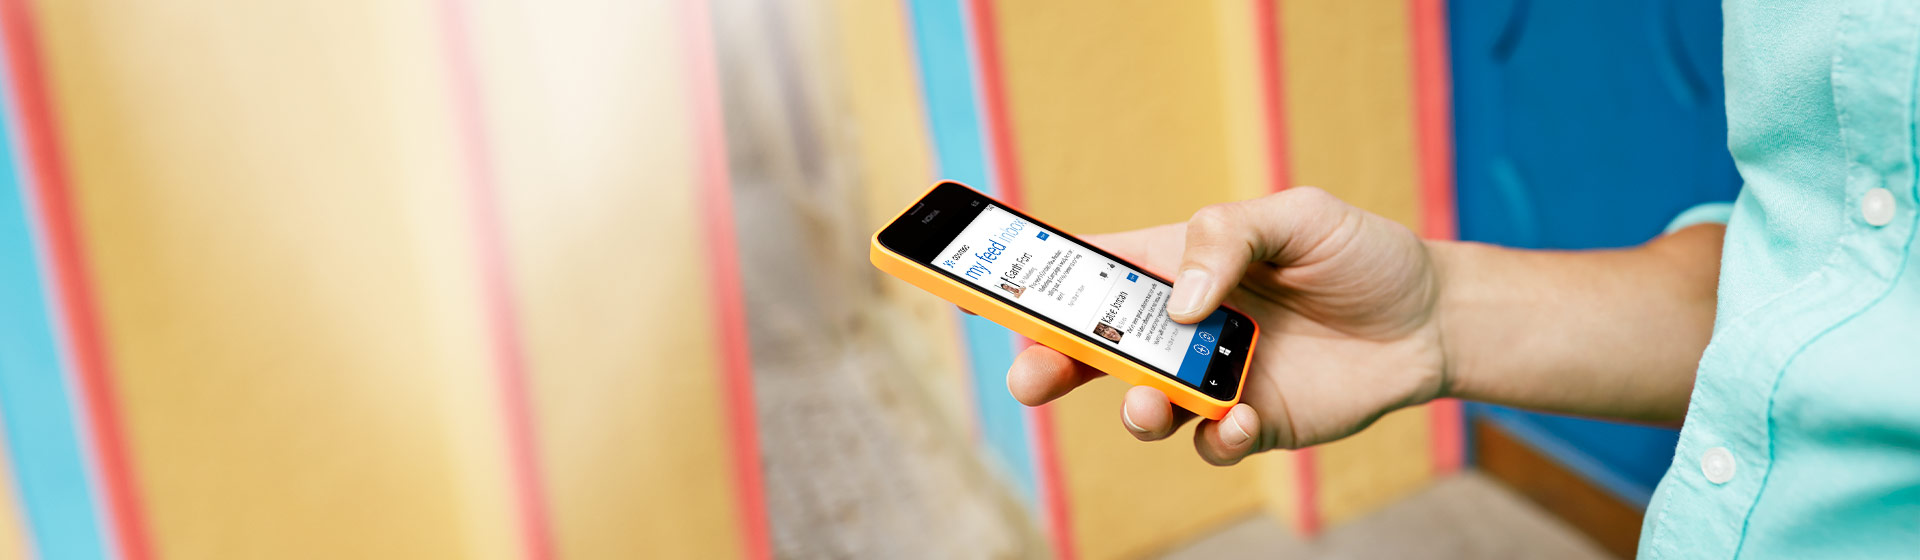 A hand holding a Windows phone displaying the feed in the Yammer mobile app